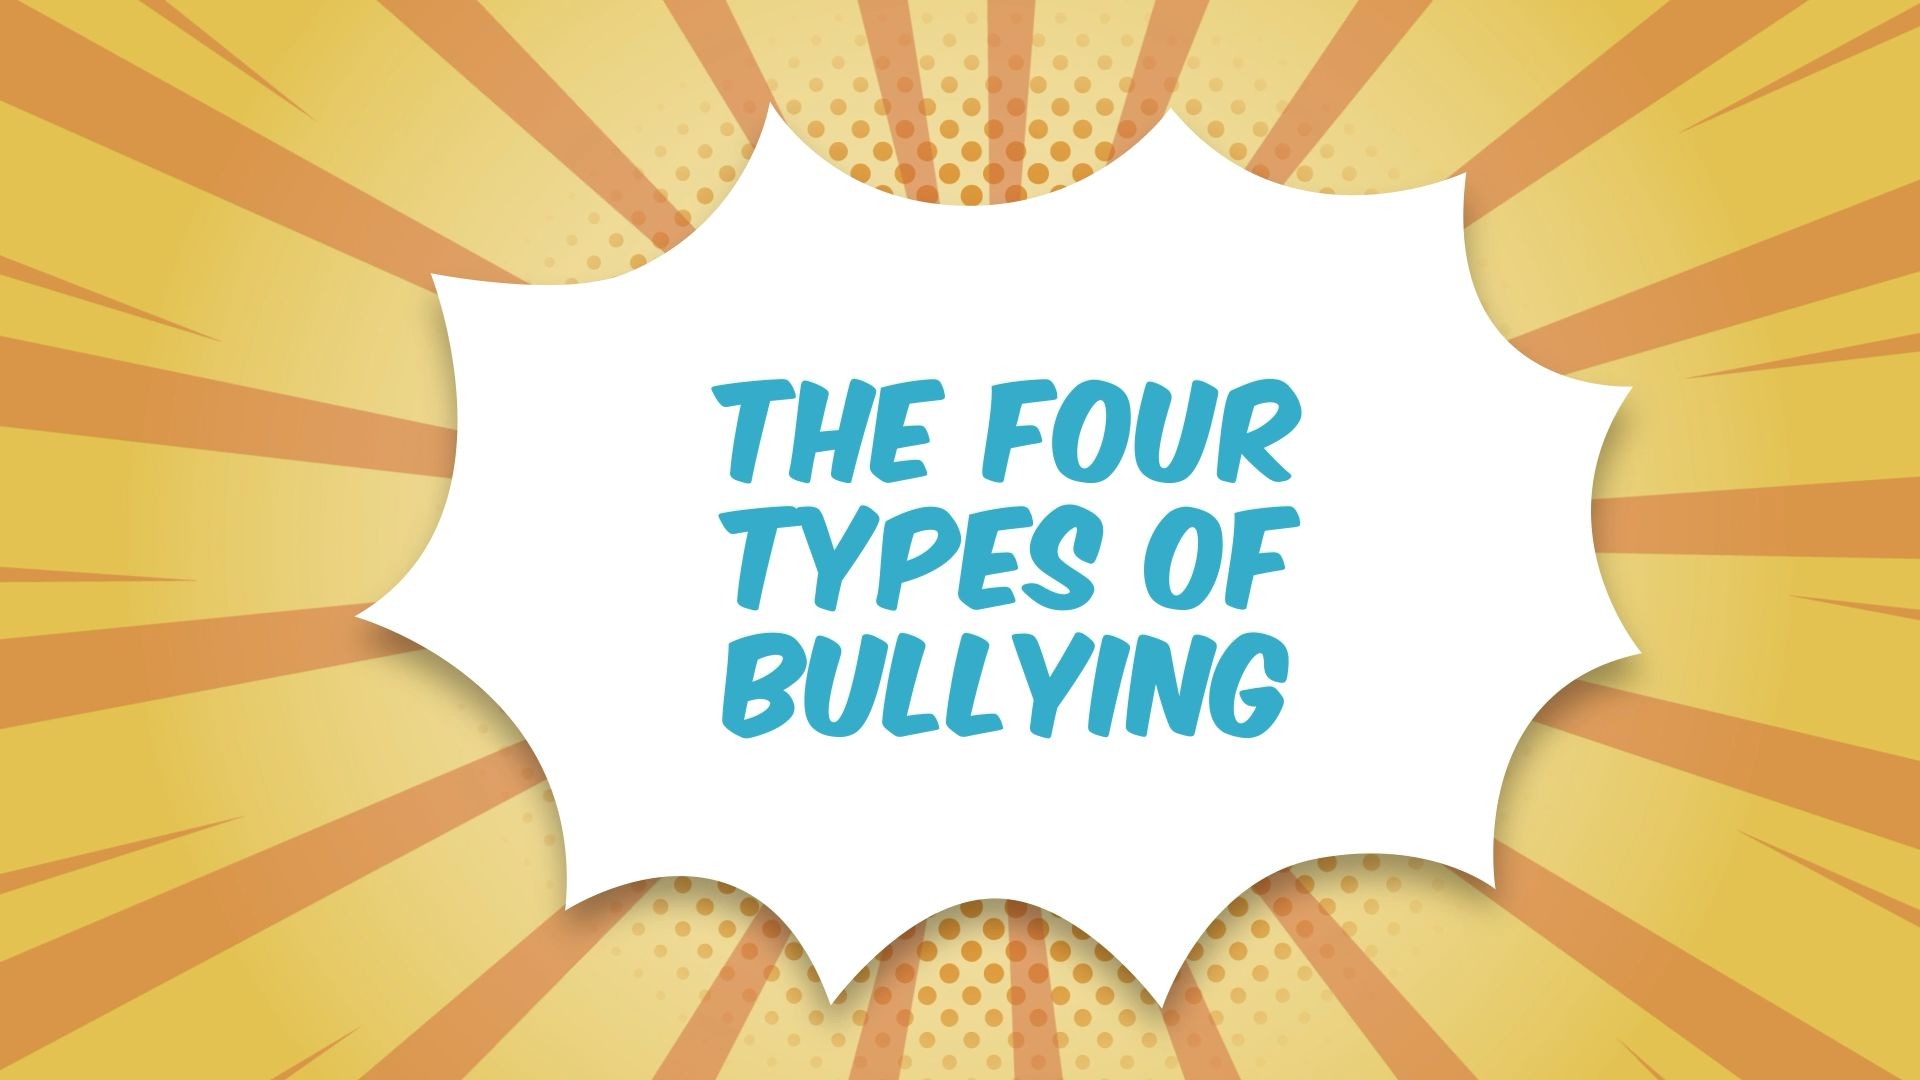 The Four Types of Bullying